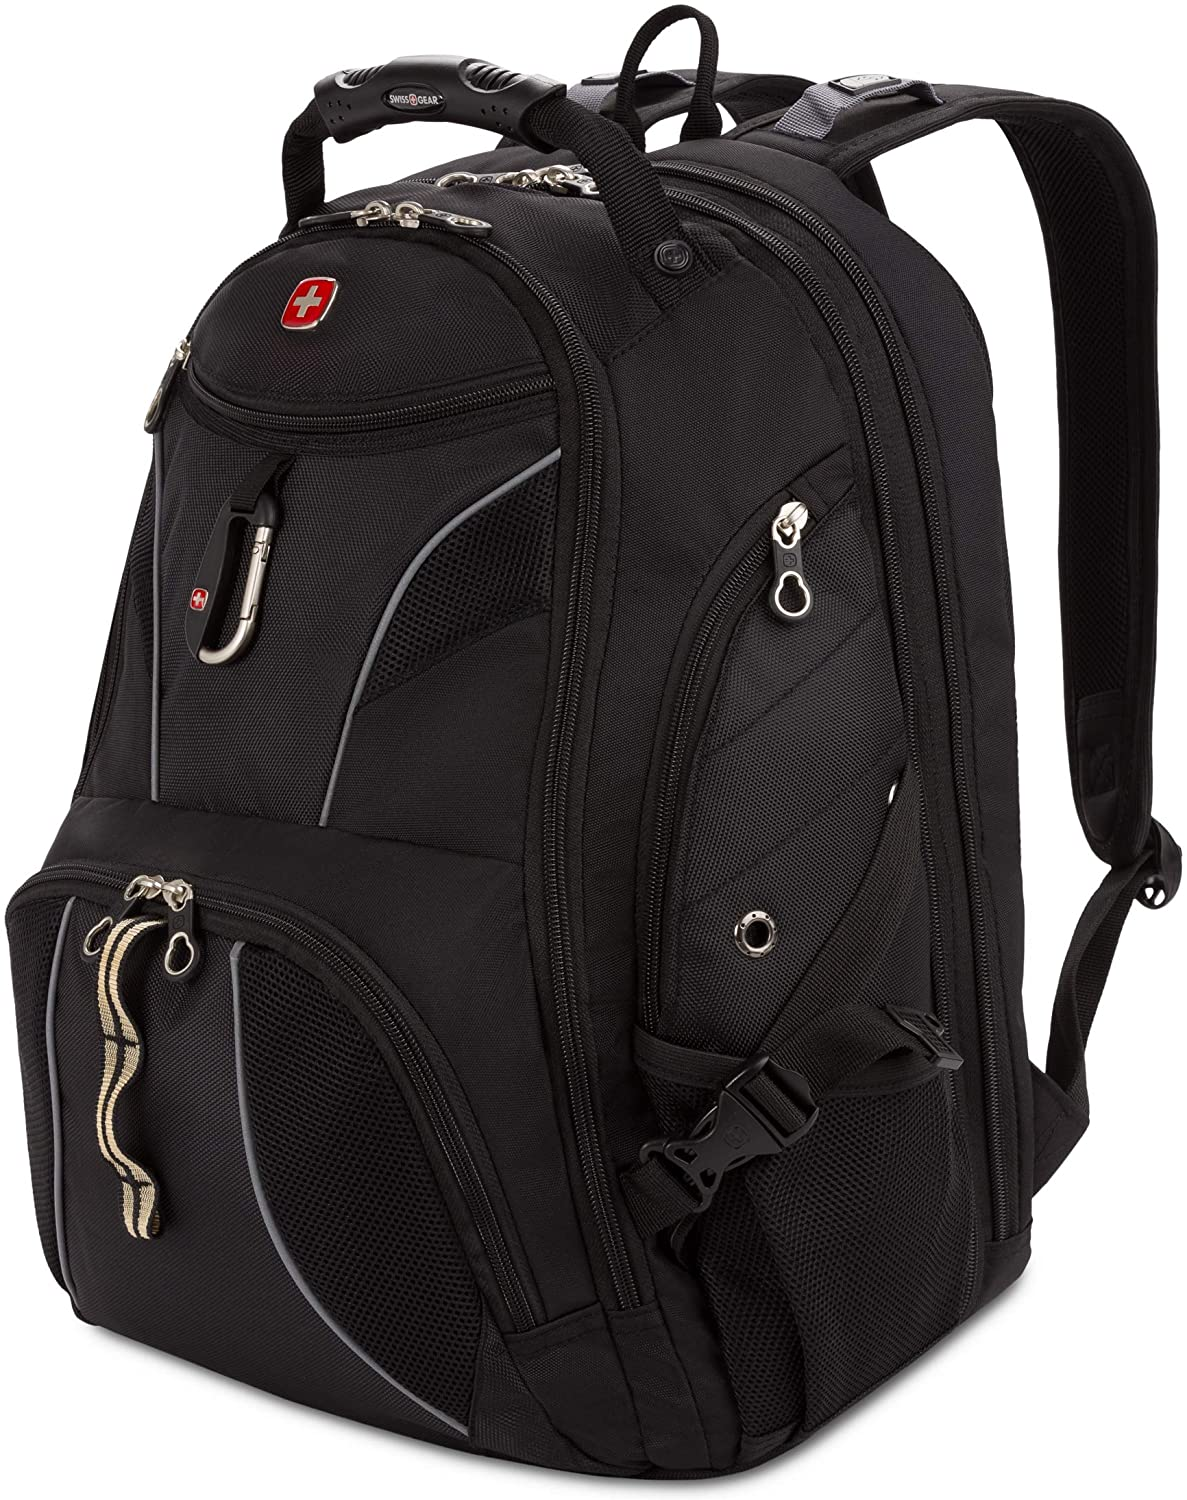 SWISSGEAR SA1923B BLACK/SILVER TSA Friendly ScanSmart Laptop Backpack - Fits Most 15 Inch Laptops and Tablets